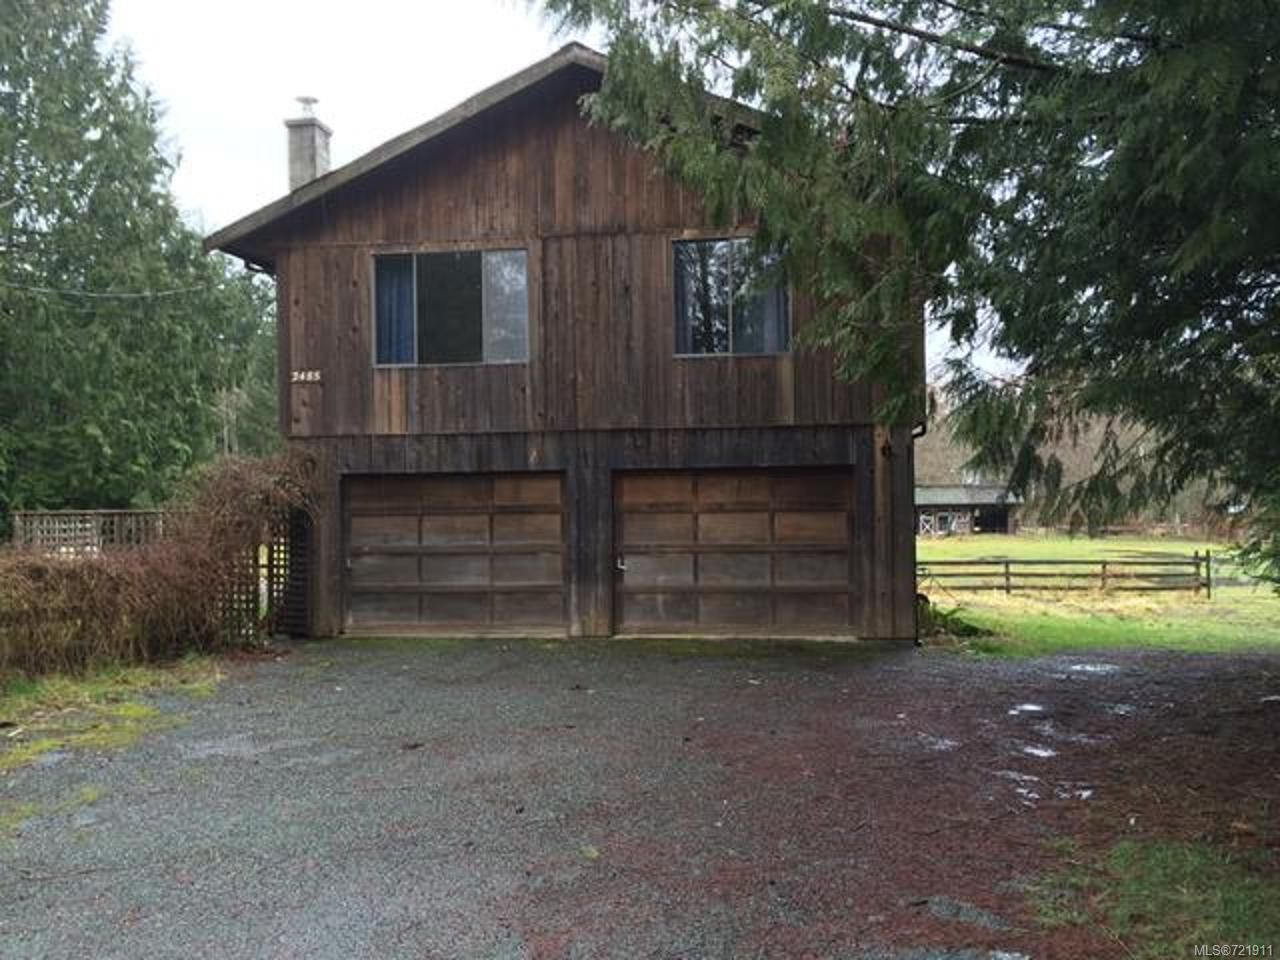 Main Photo: 2485 ENGLAND ROAD in COURTENAY: CV Courtenay West House for sale (Comox Valley)  : MLS®# 721911